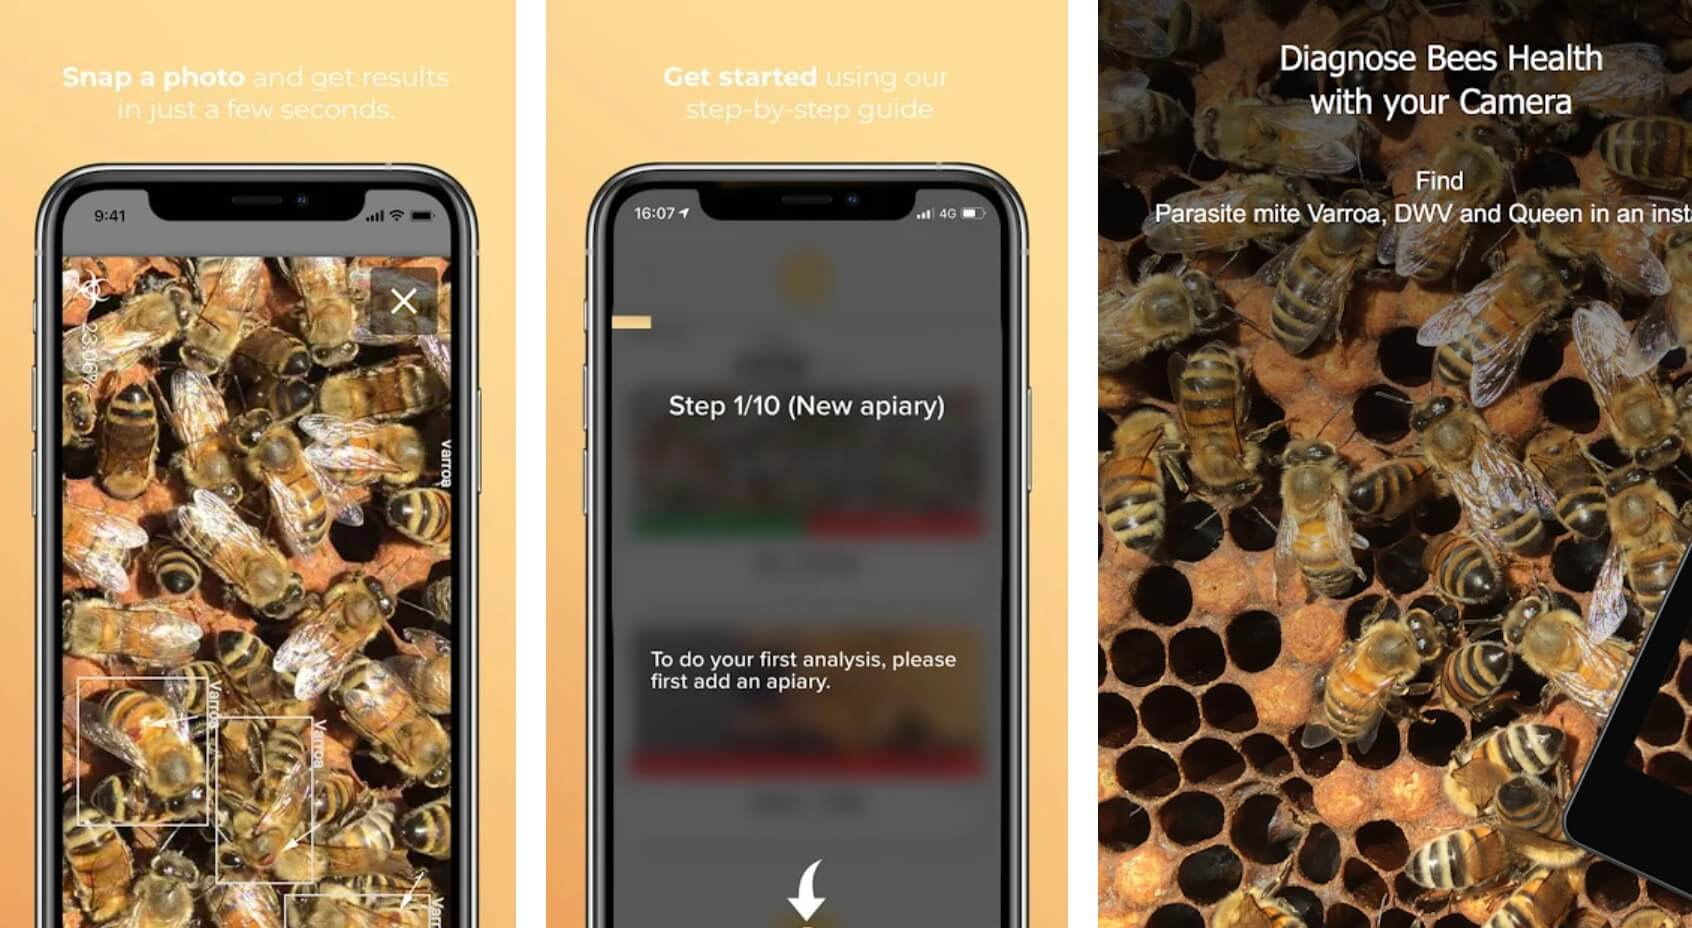 11 Best Beekeeping Apps For Android and iOS Devices